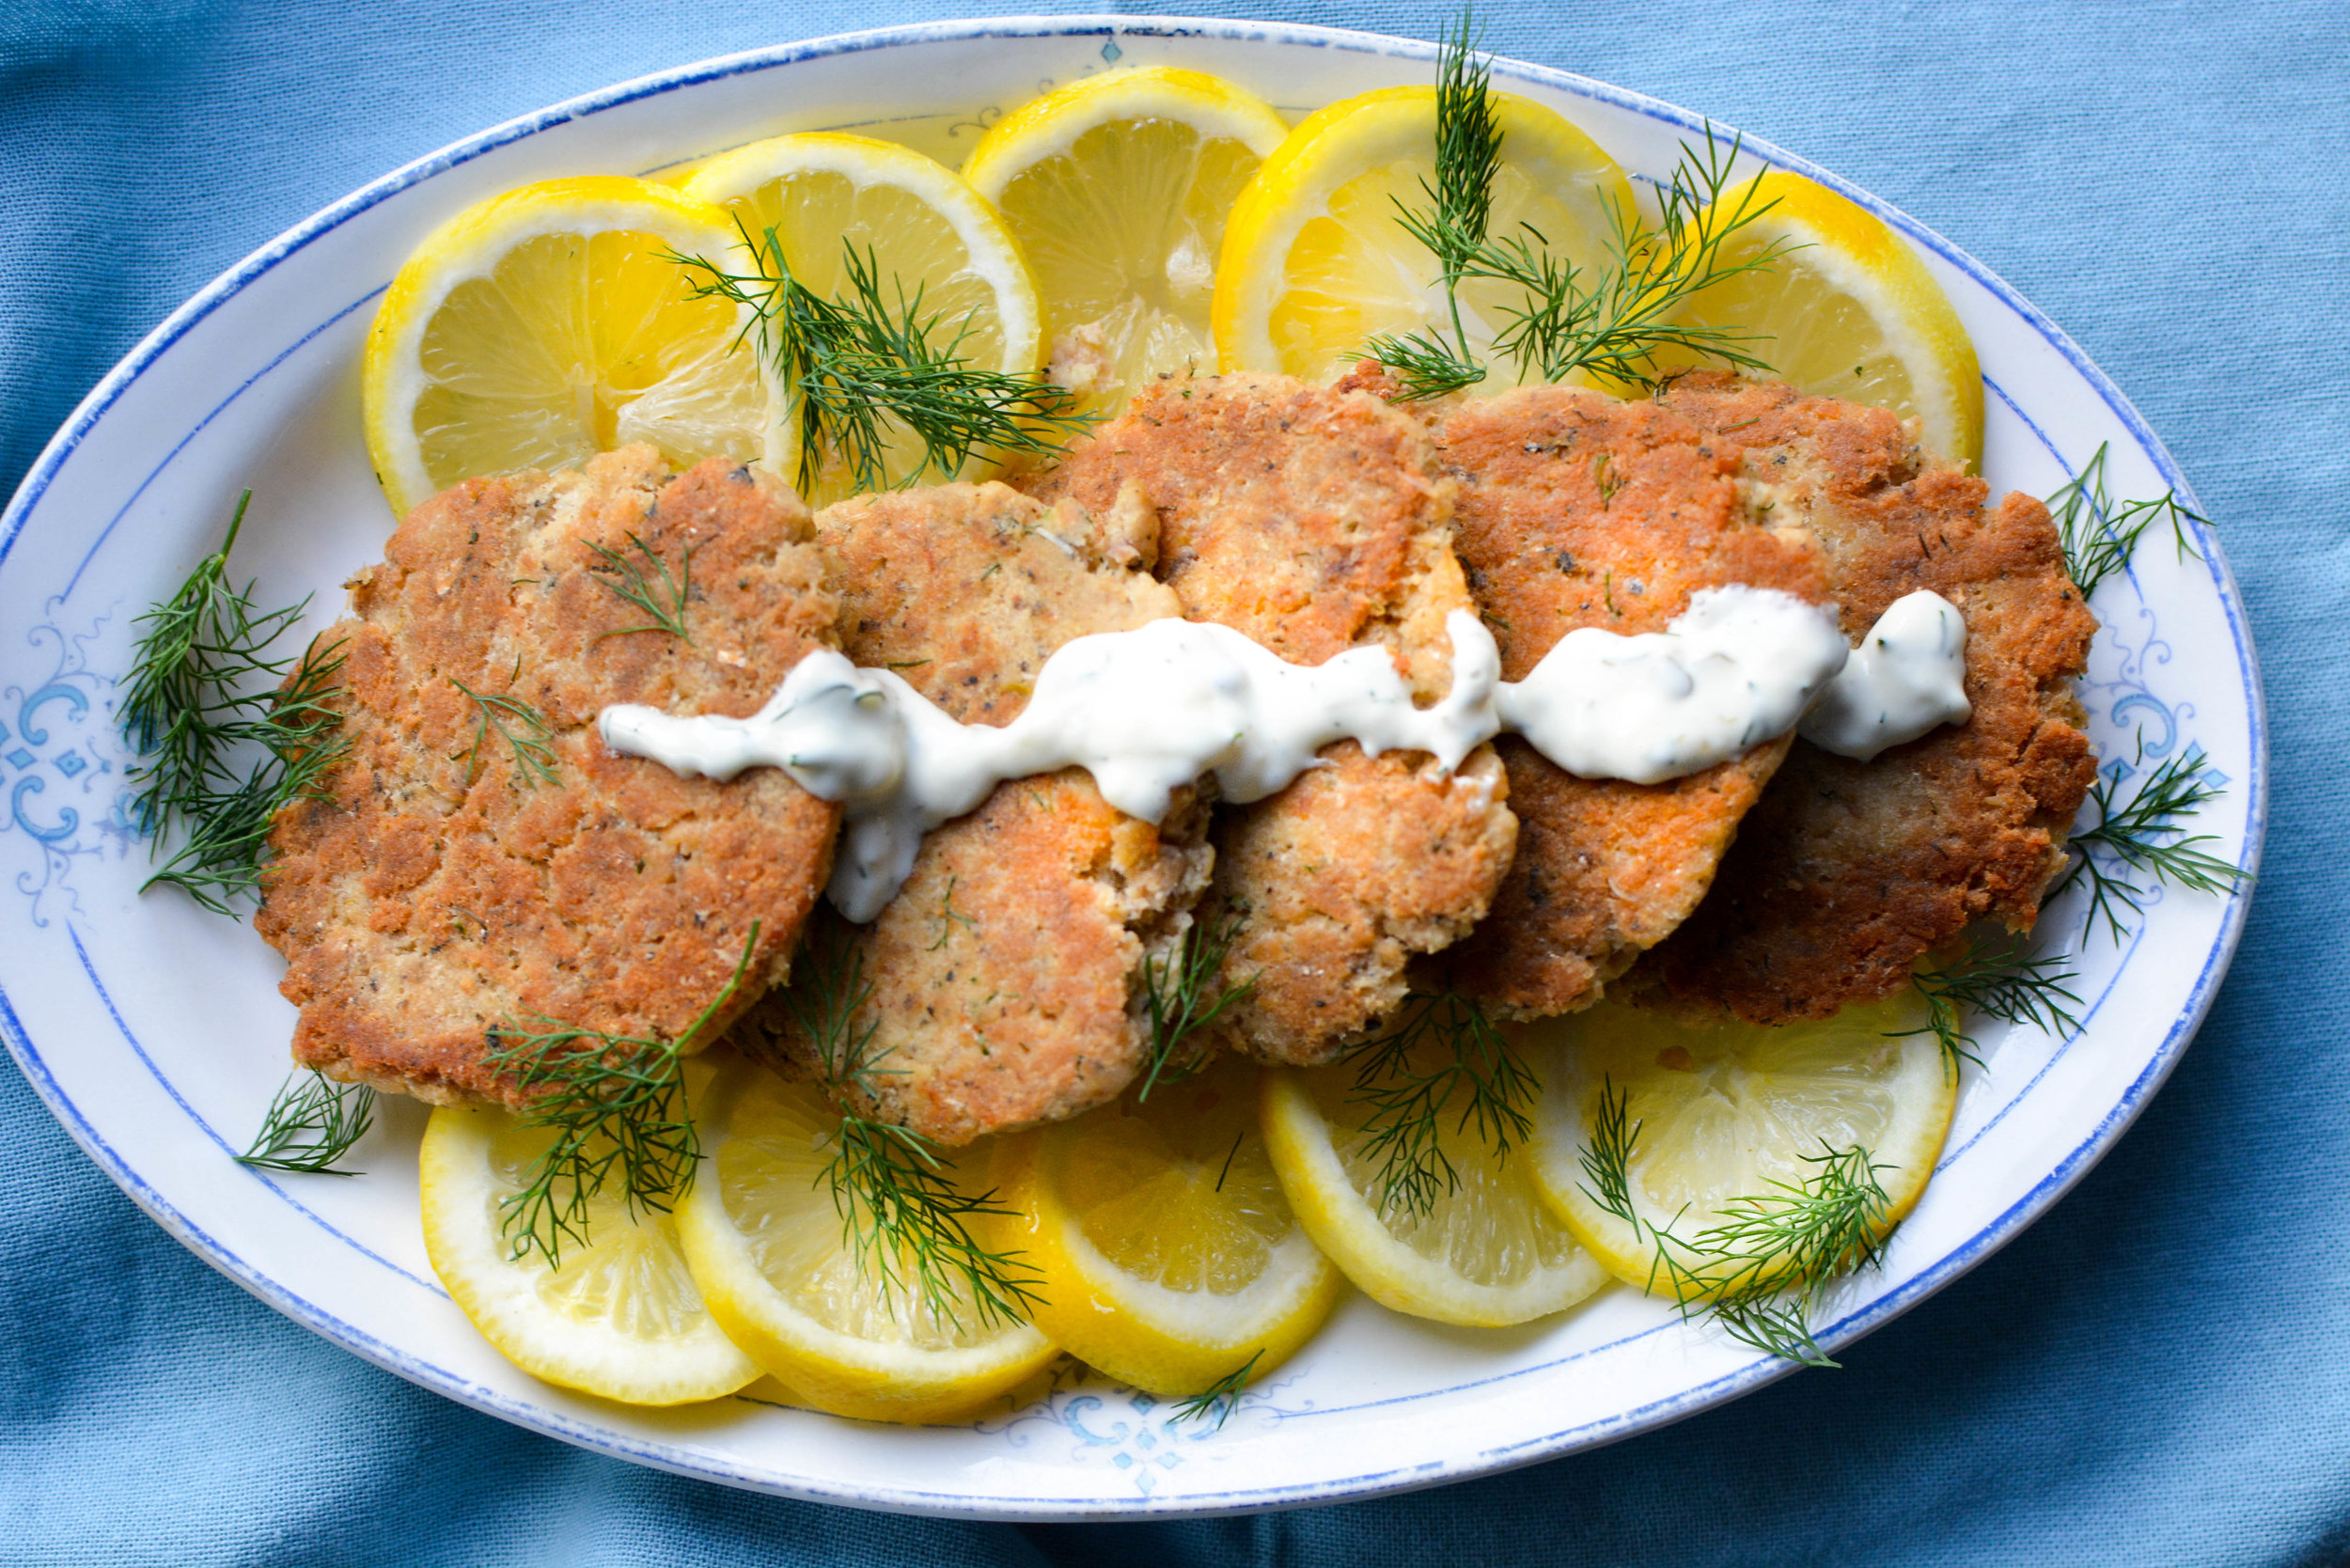 salmon cakes, sauce and lemons